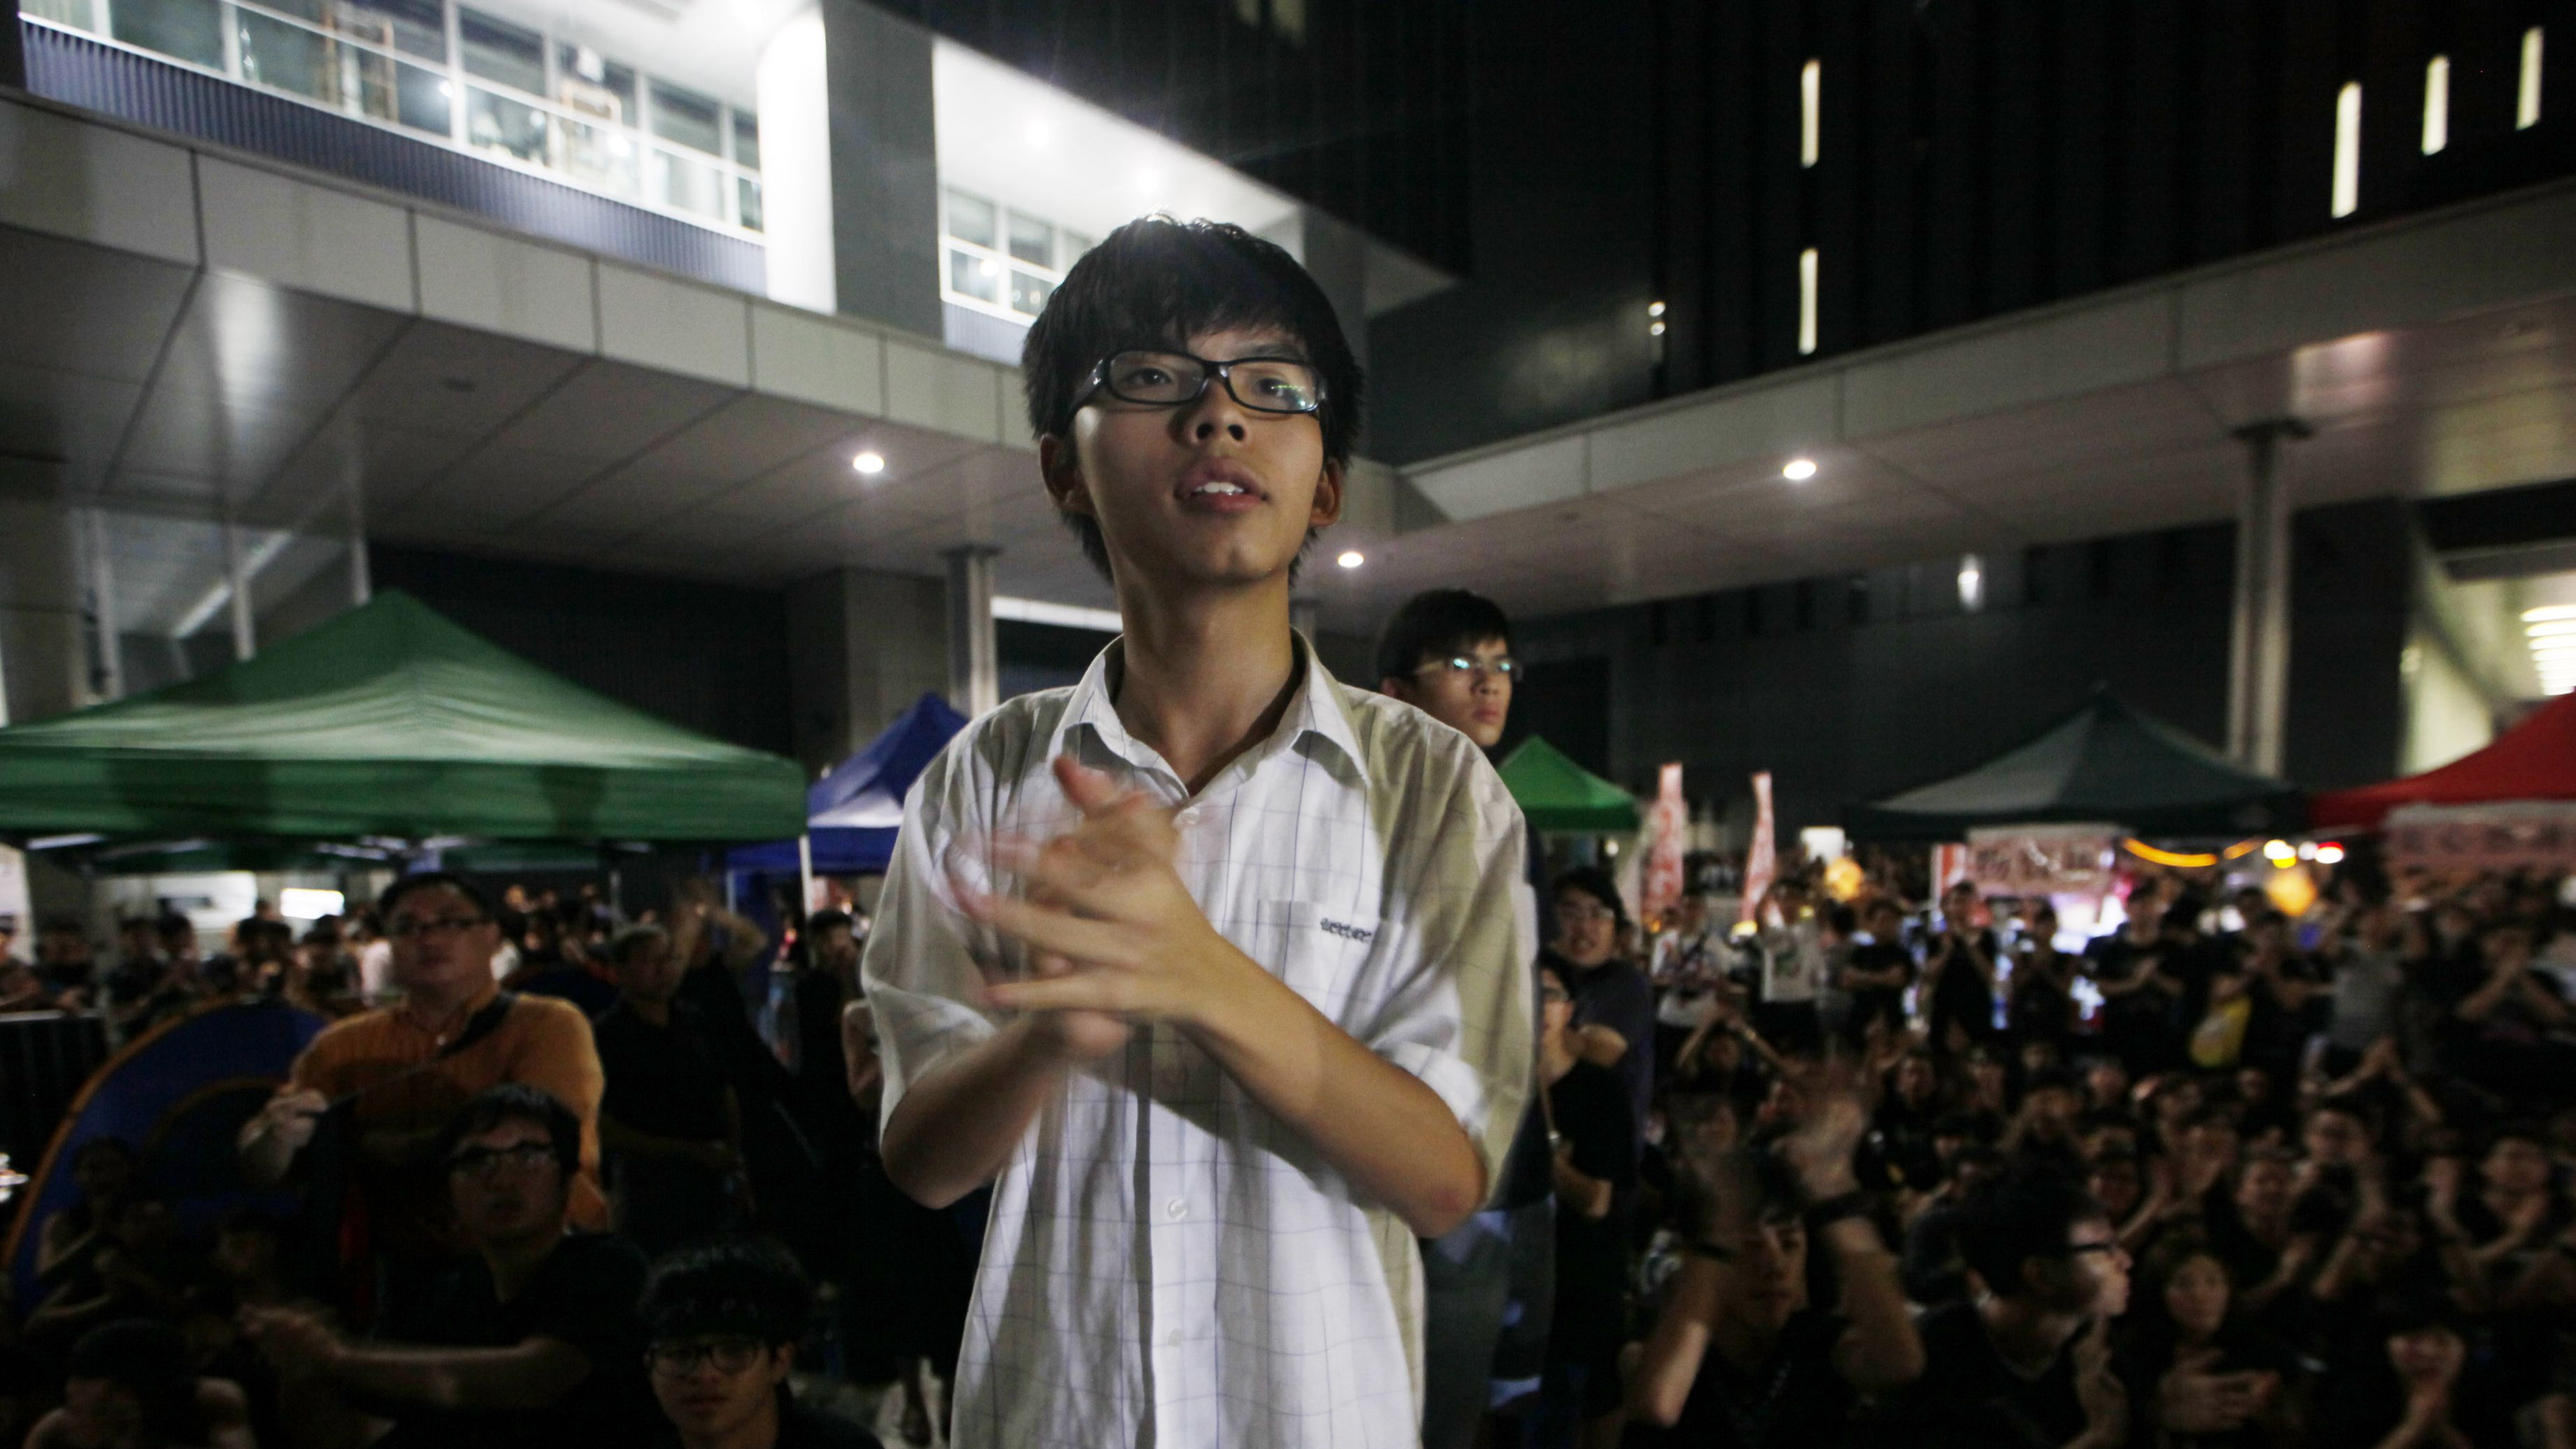 """Convener of the students group """"Scholarism"""" Joshua Wong attends a sit-in protest outside the government headquarters in Hong Kong, Wednesday, Sept. 5, 2012. Protesters urged the government to cancel new additional course, """"Moral and National Education"""" subject, to be introduced for school curriculum, starting from a new school year. (AP Photo/Kin Cheung"""